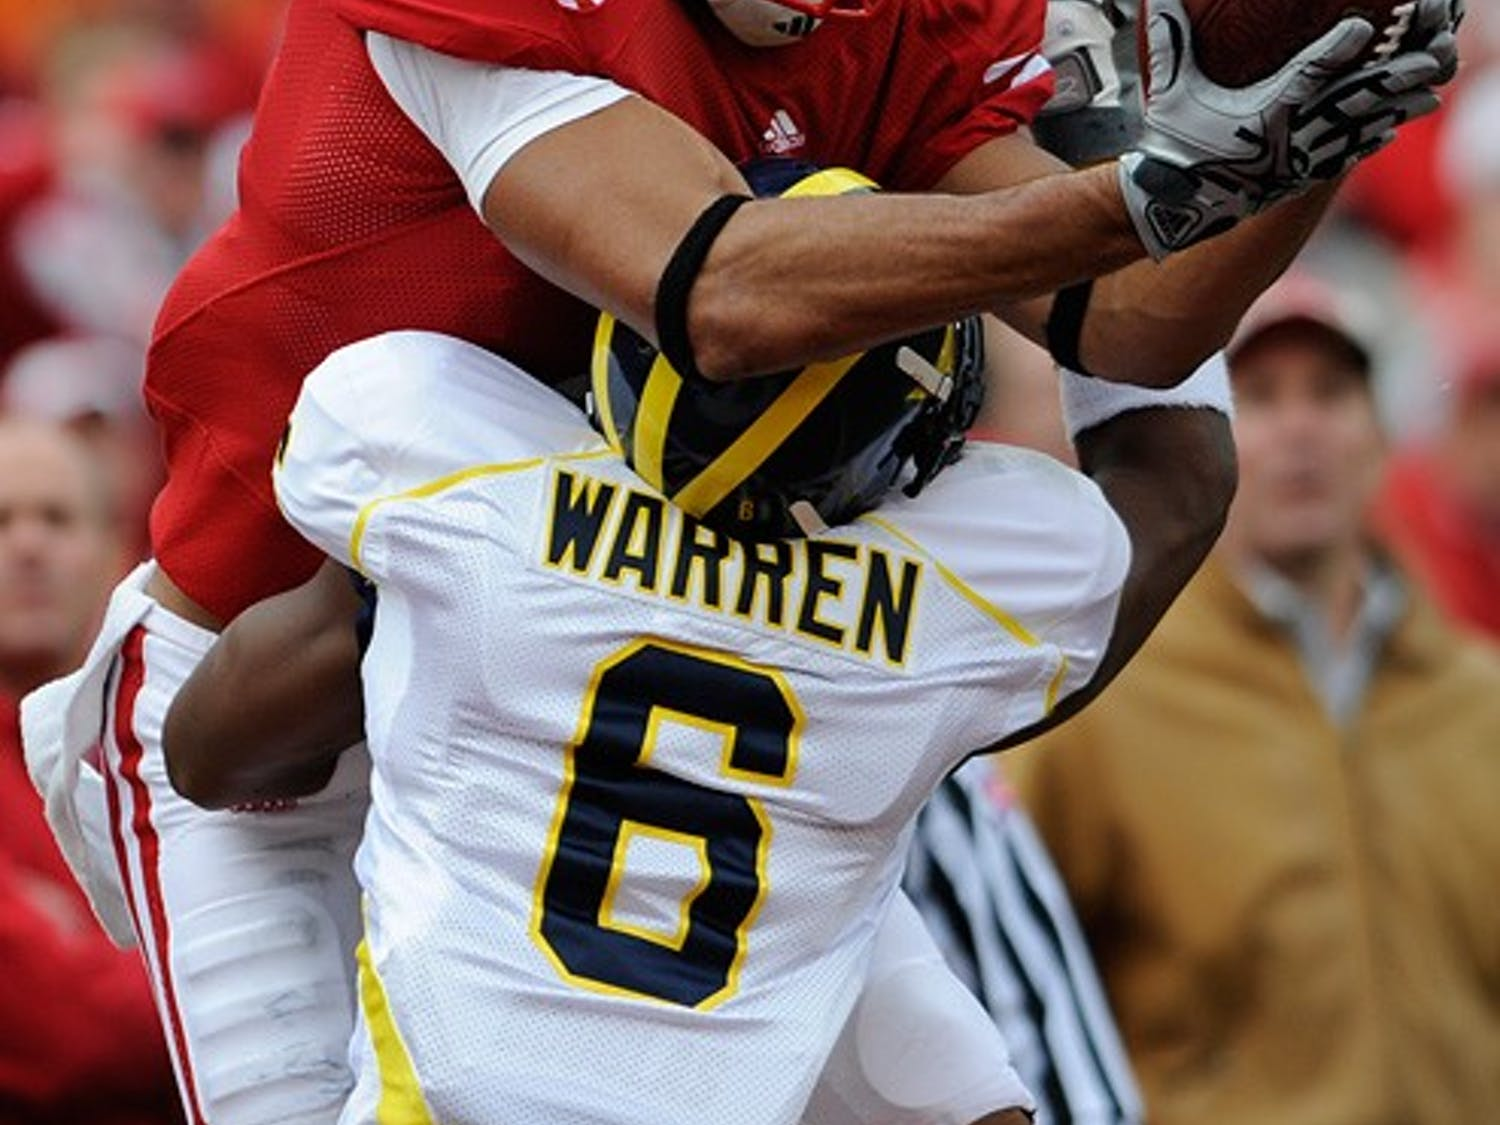 Badgers avenge '08 loss with win over Wolverines